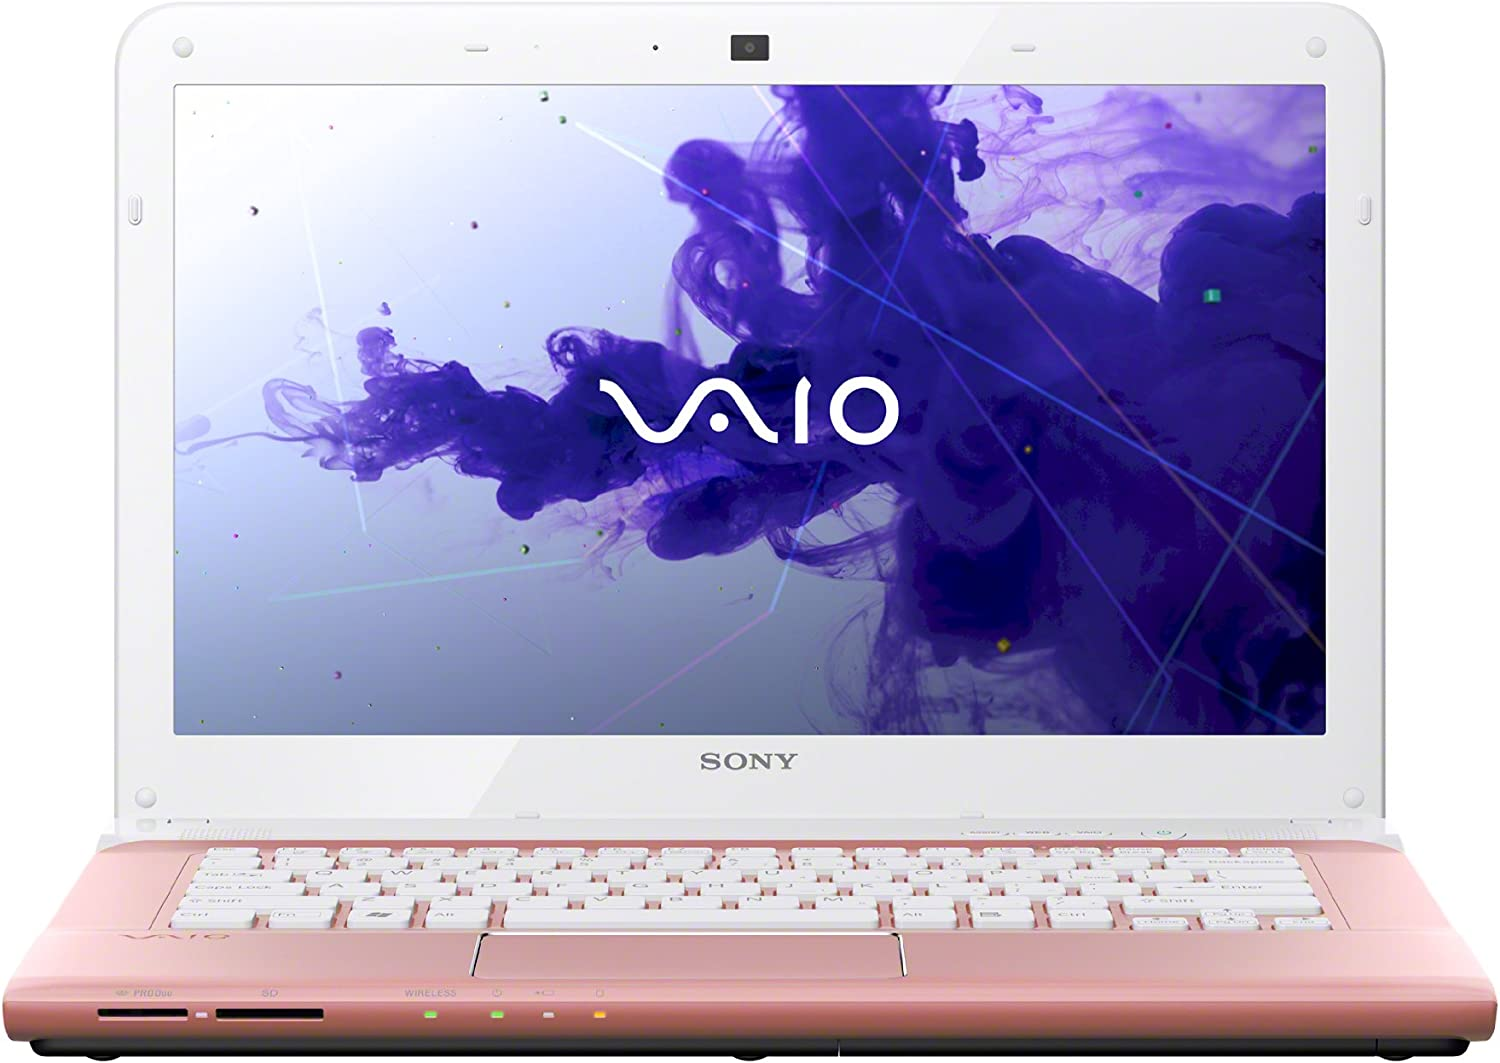 Sony VAIO E Series SVE1413TCXP Laptop (Windows 8, Intel Pentium E2220 2.4 GHz Processor, 14 inches Display, SSD: 320 GB , RAM: 4 GB DDR3) Seashell Pink